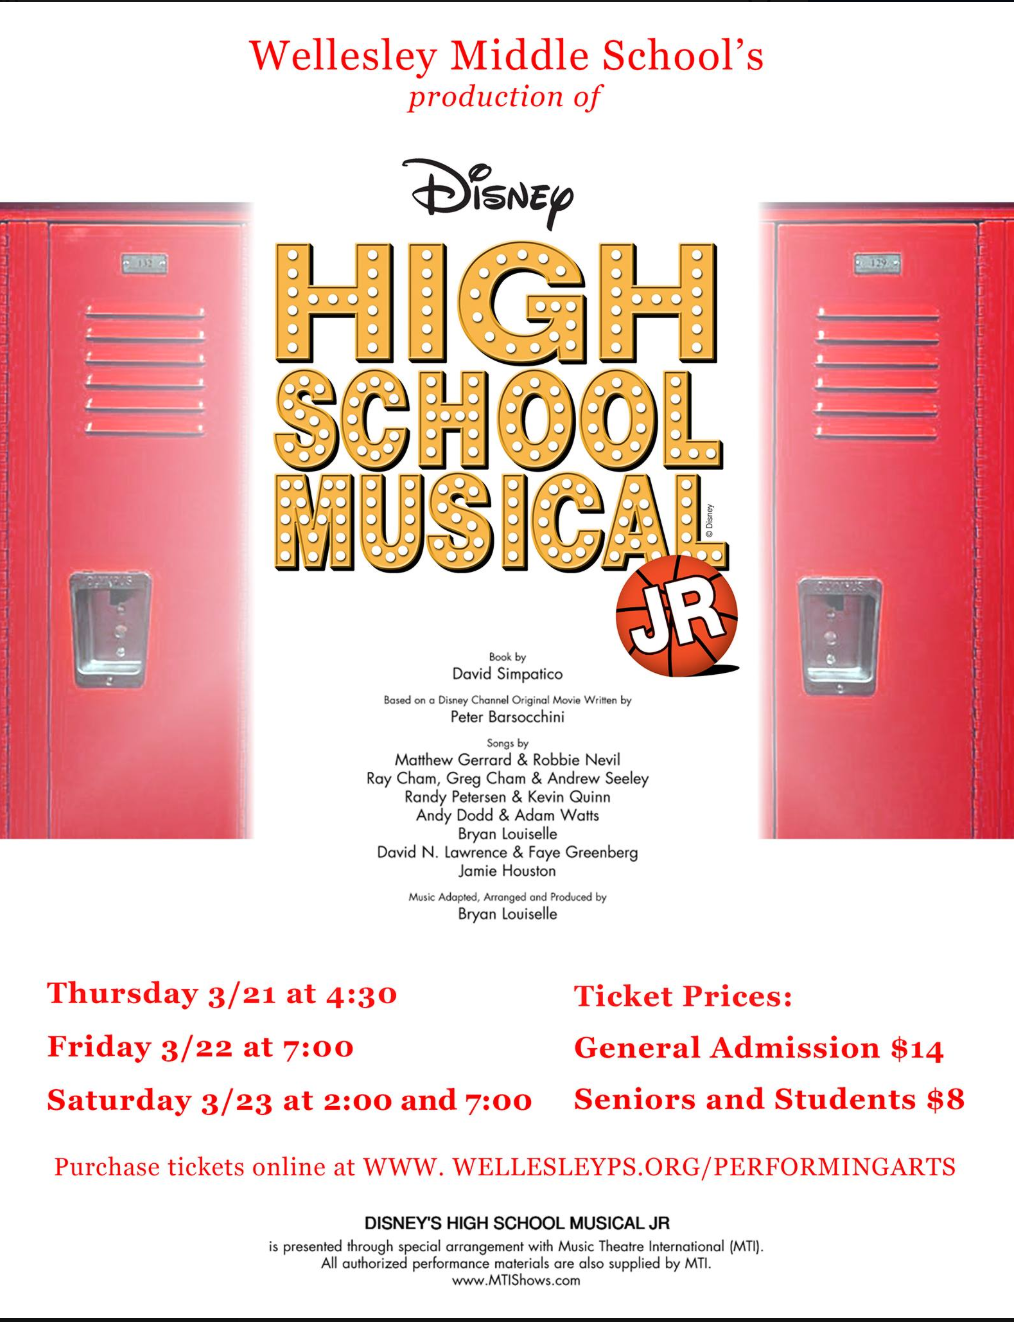 Wellesley Middle School, High School Musical